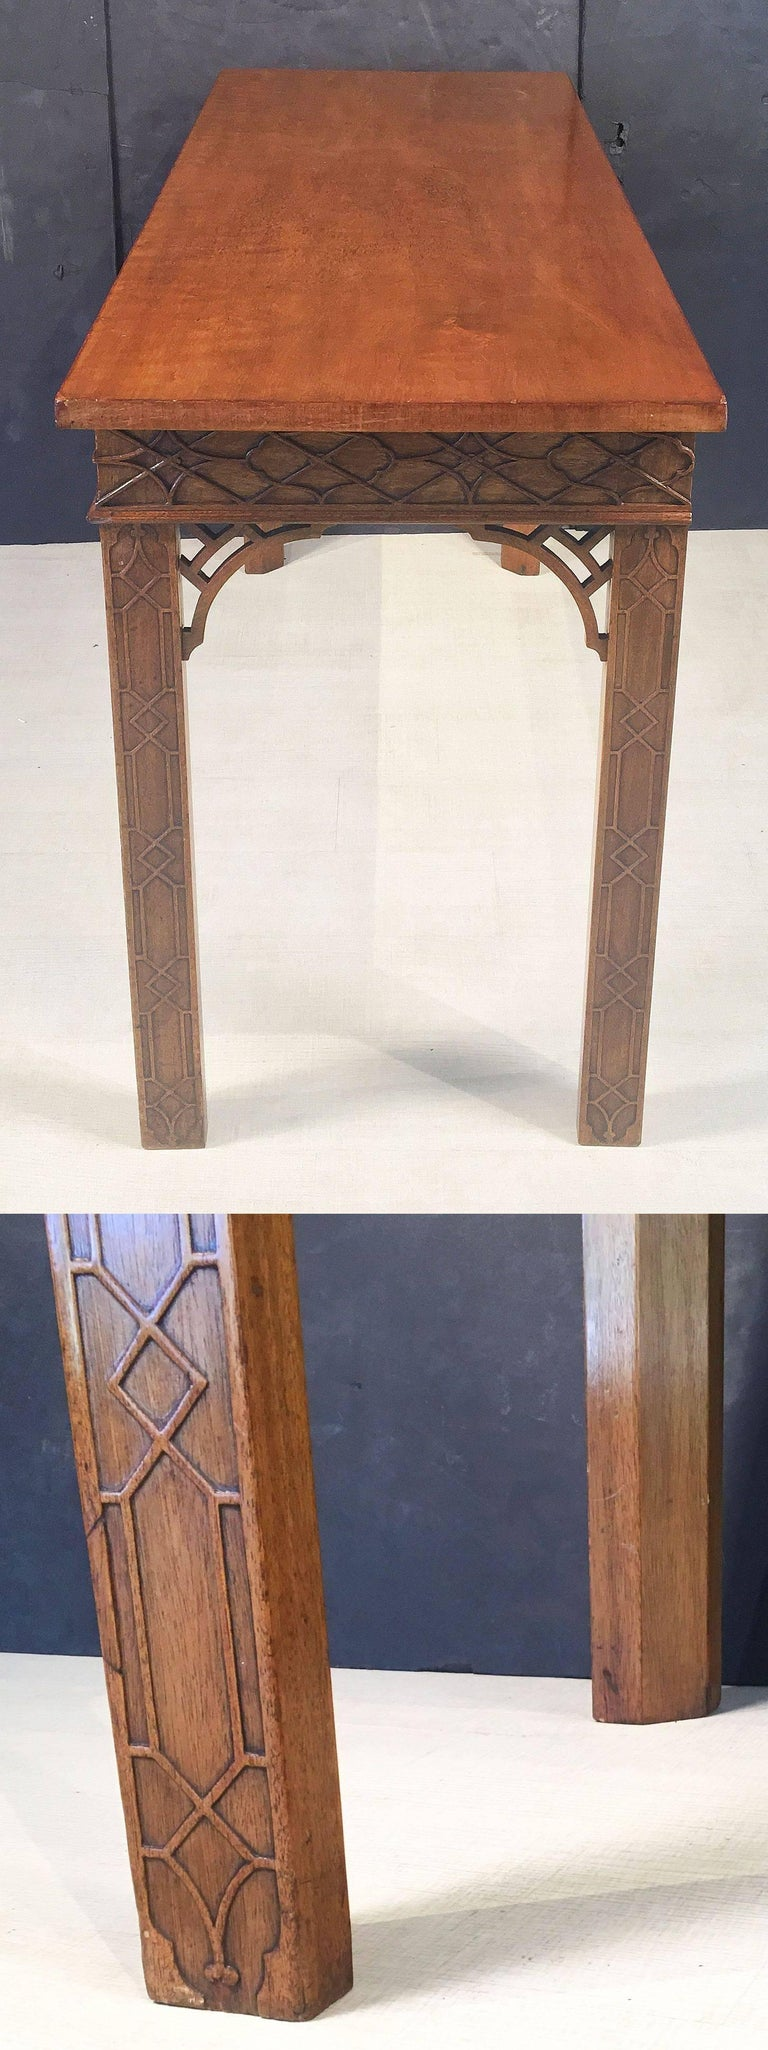 English Walnut Console Table or Server in the Chinese Chippendale Style For Sale 4